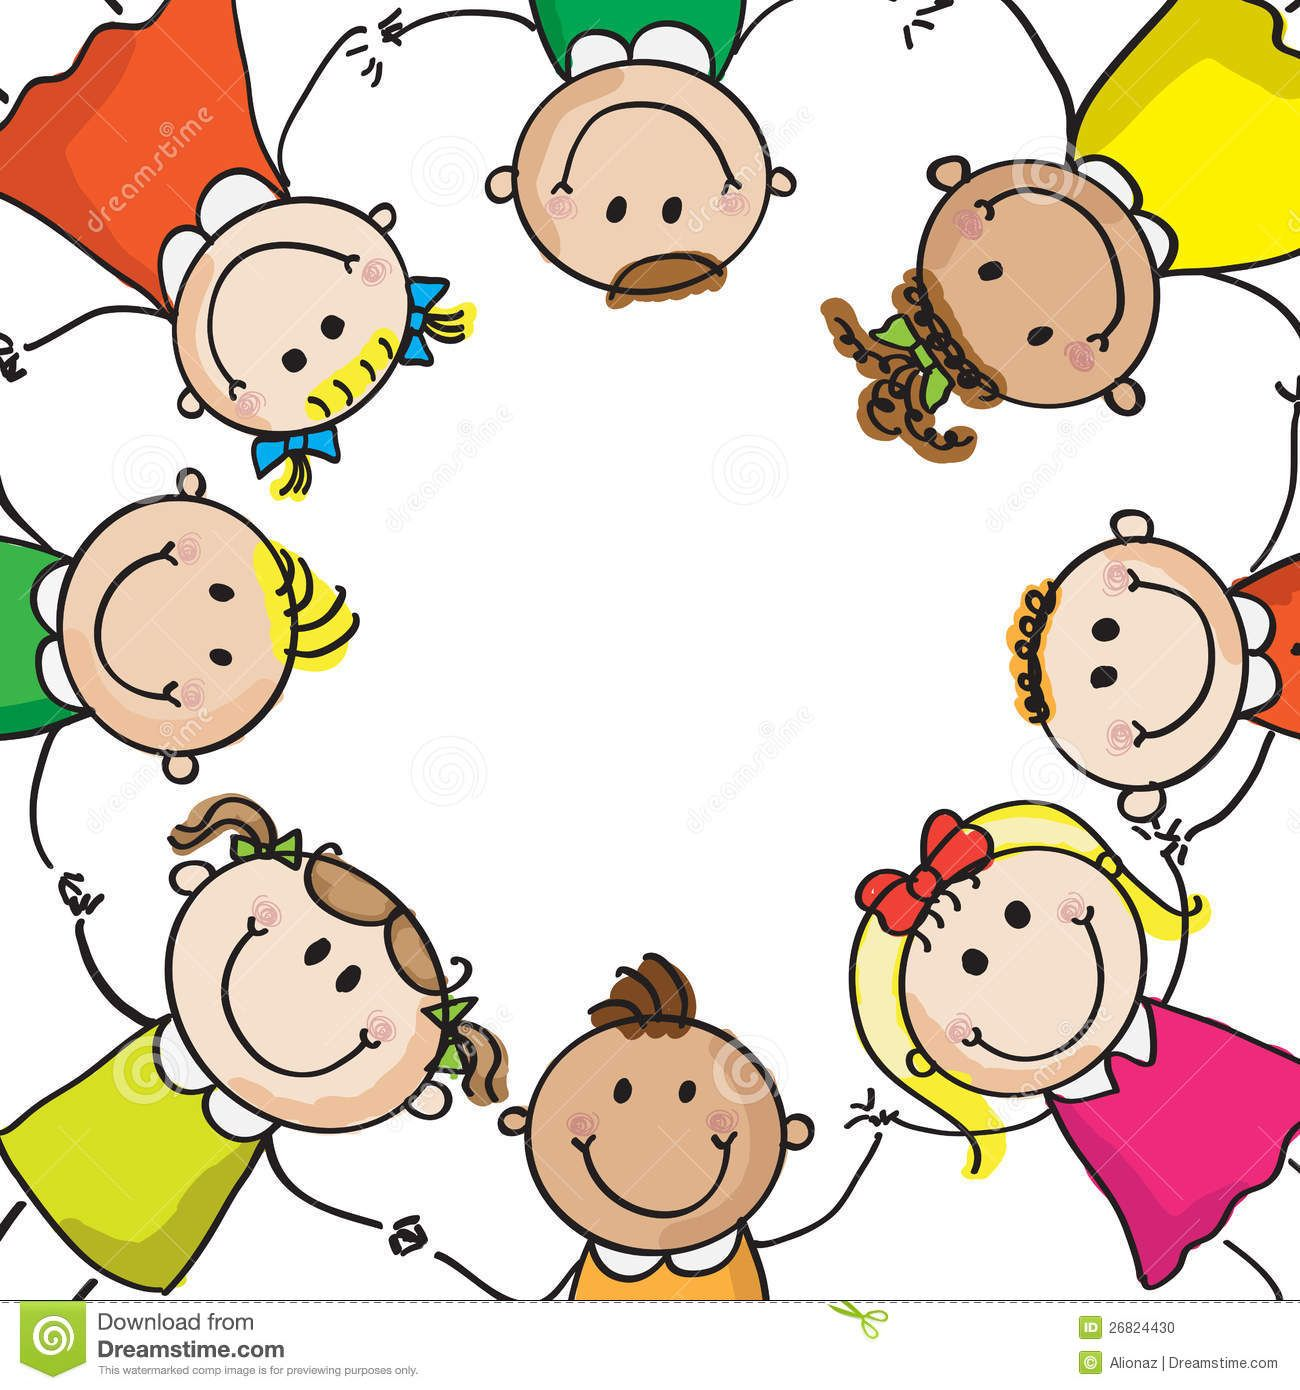 Draw clipart toddler. Children holding hands drawing